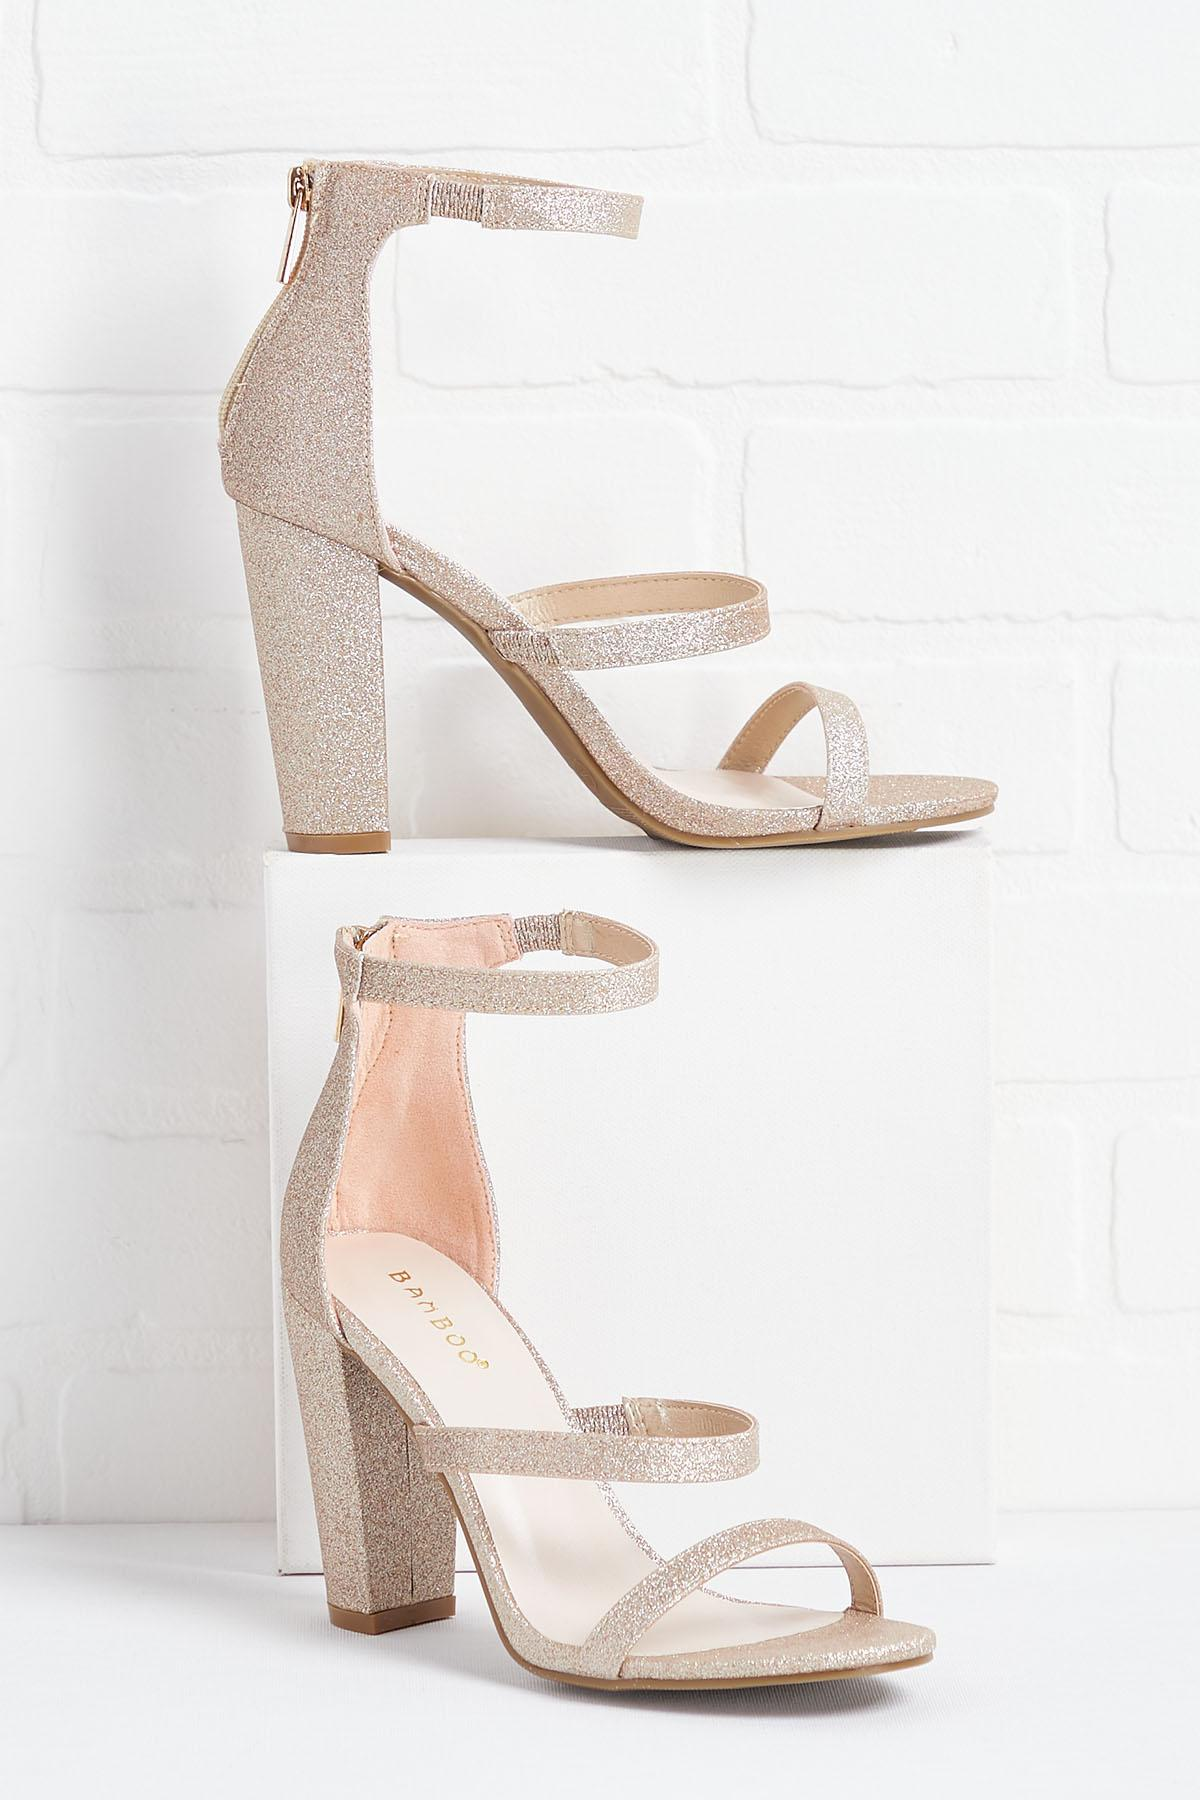 Pop The Champagne Heels